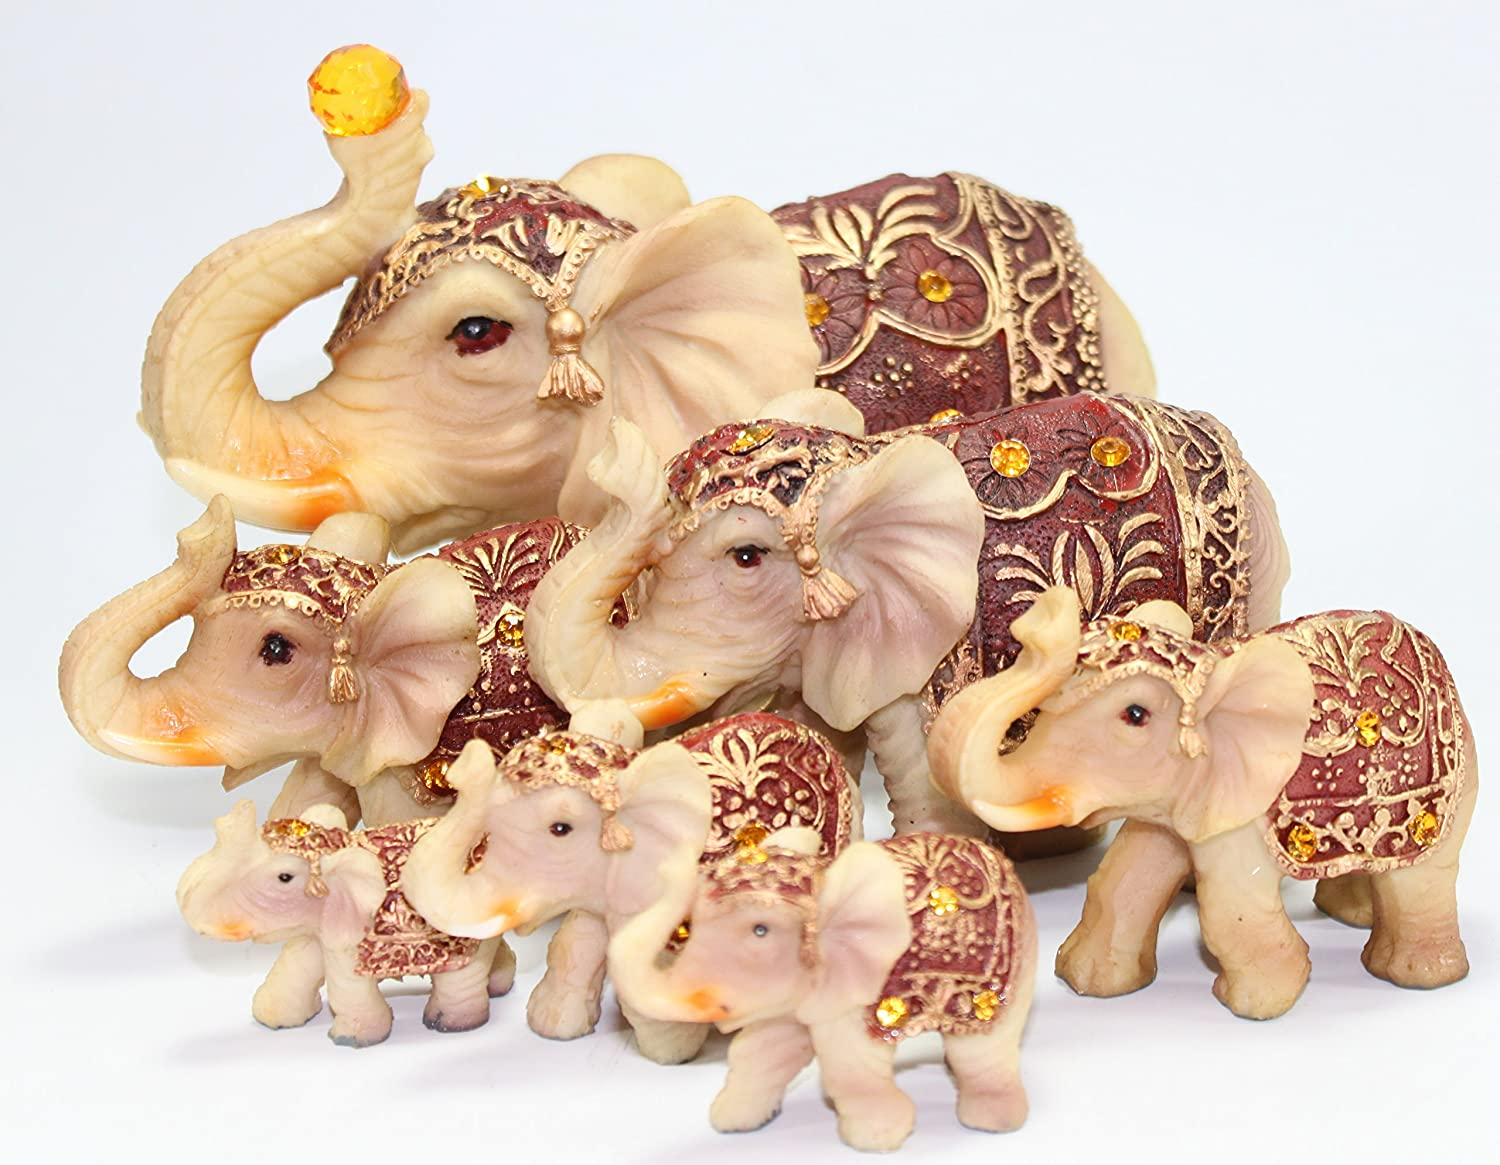 Feng Shui Set of 7 ~ Vintage Elephant Family Statues Wealth Lucky Figurines Home Decor Housewarming Congratulatory Gift US Seller